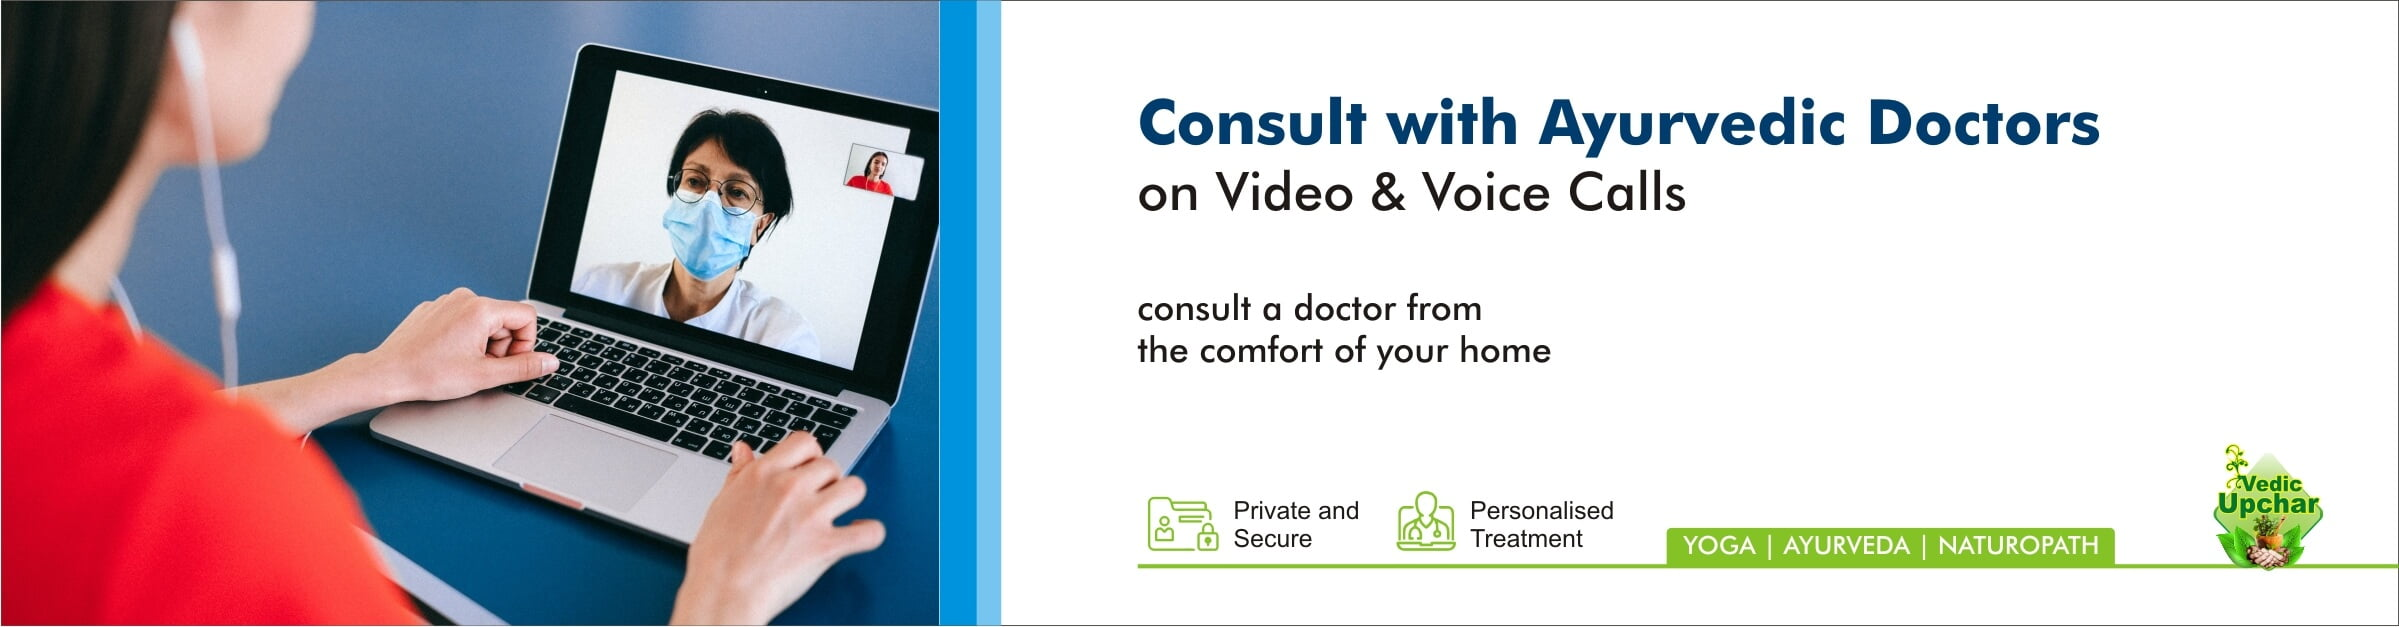 consult-the-doctor-Vedic-Upchar